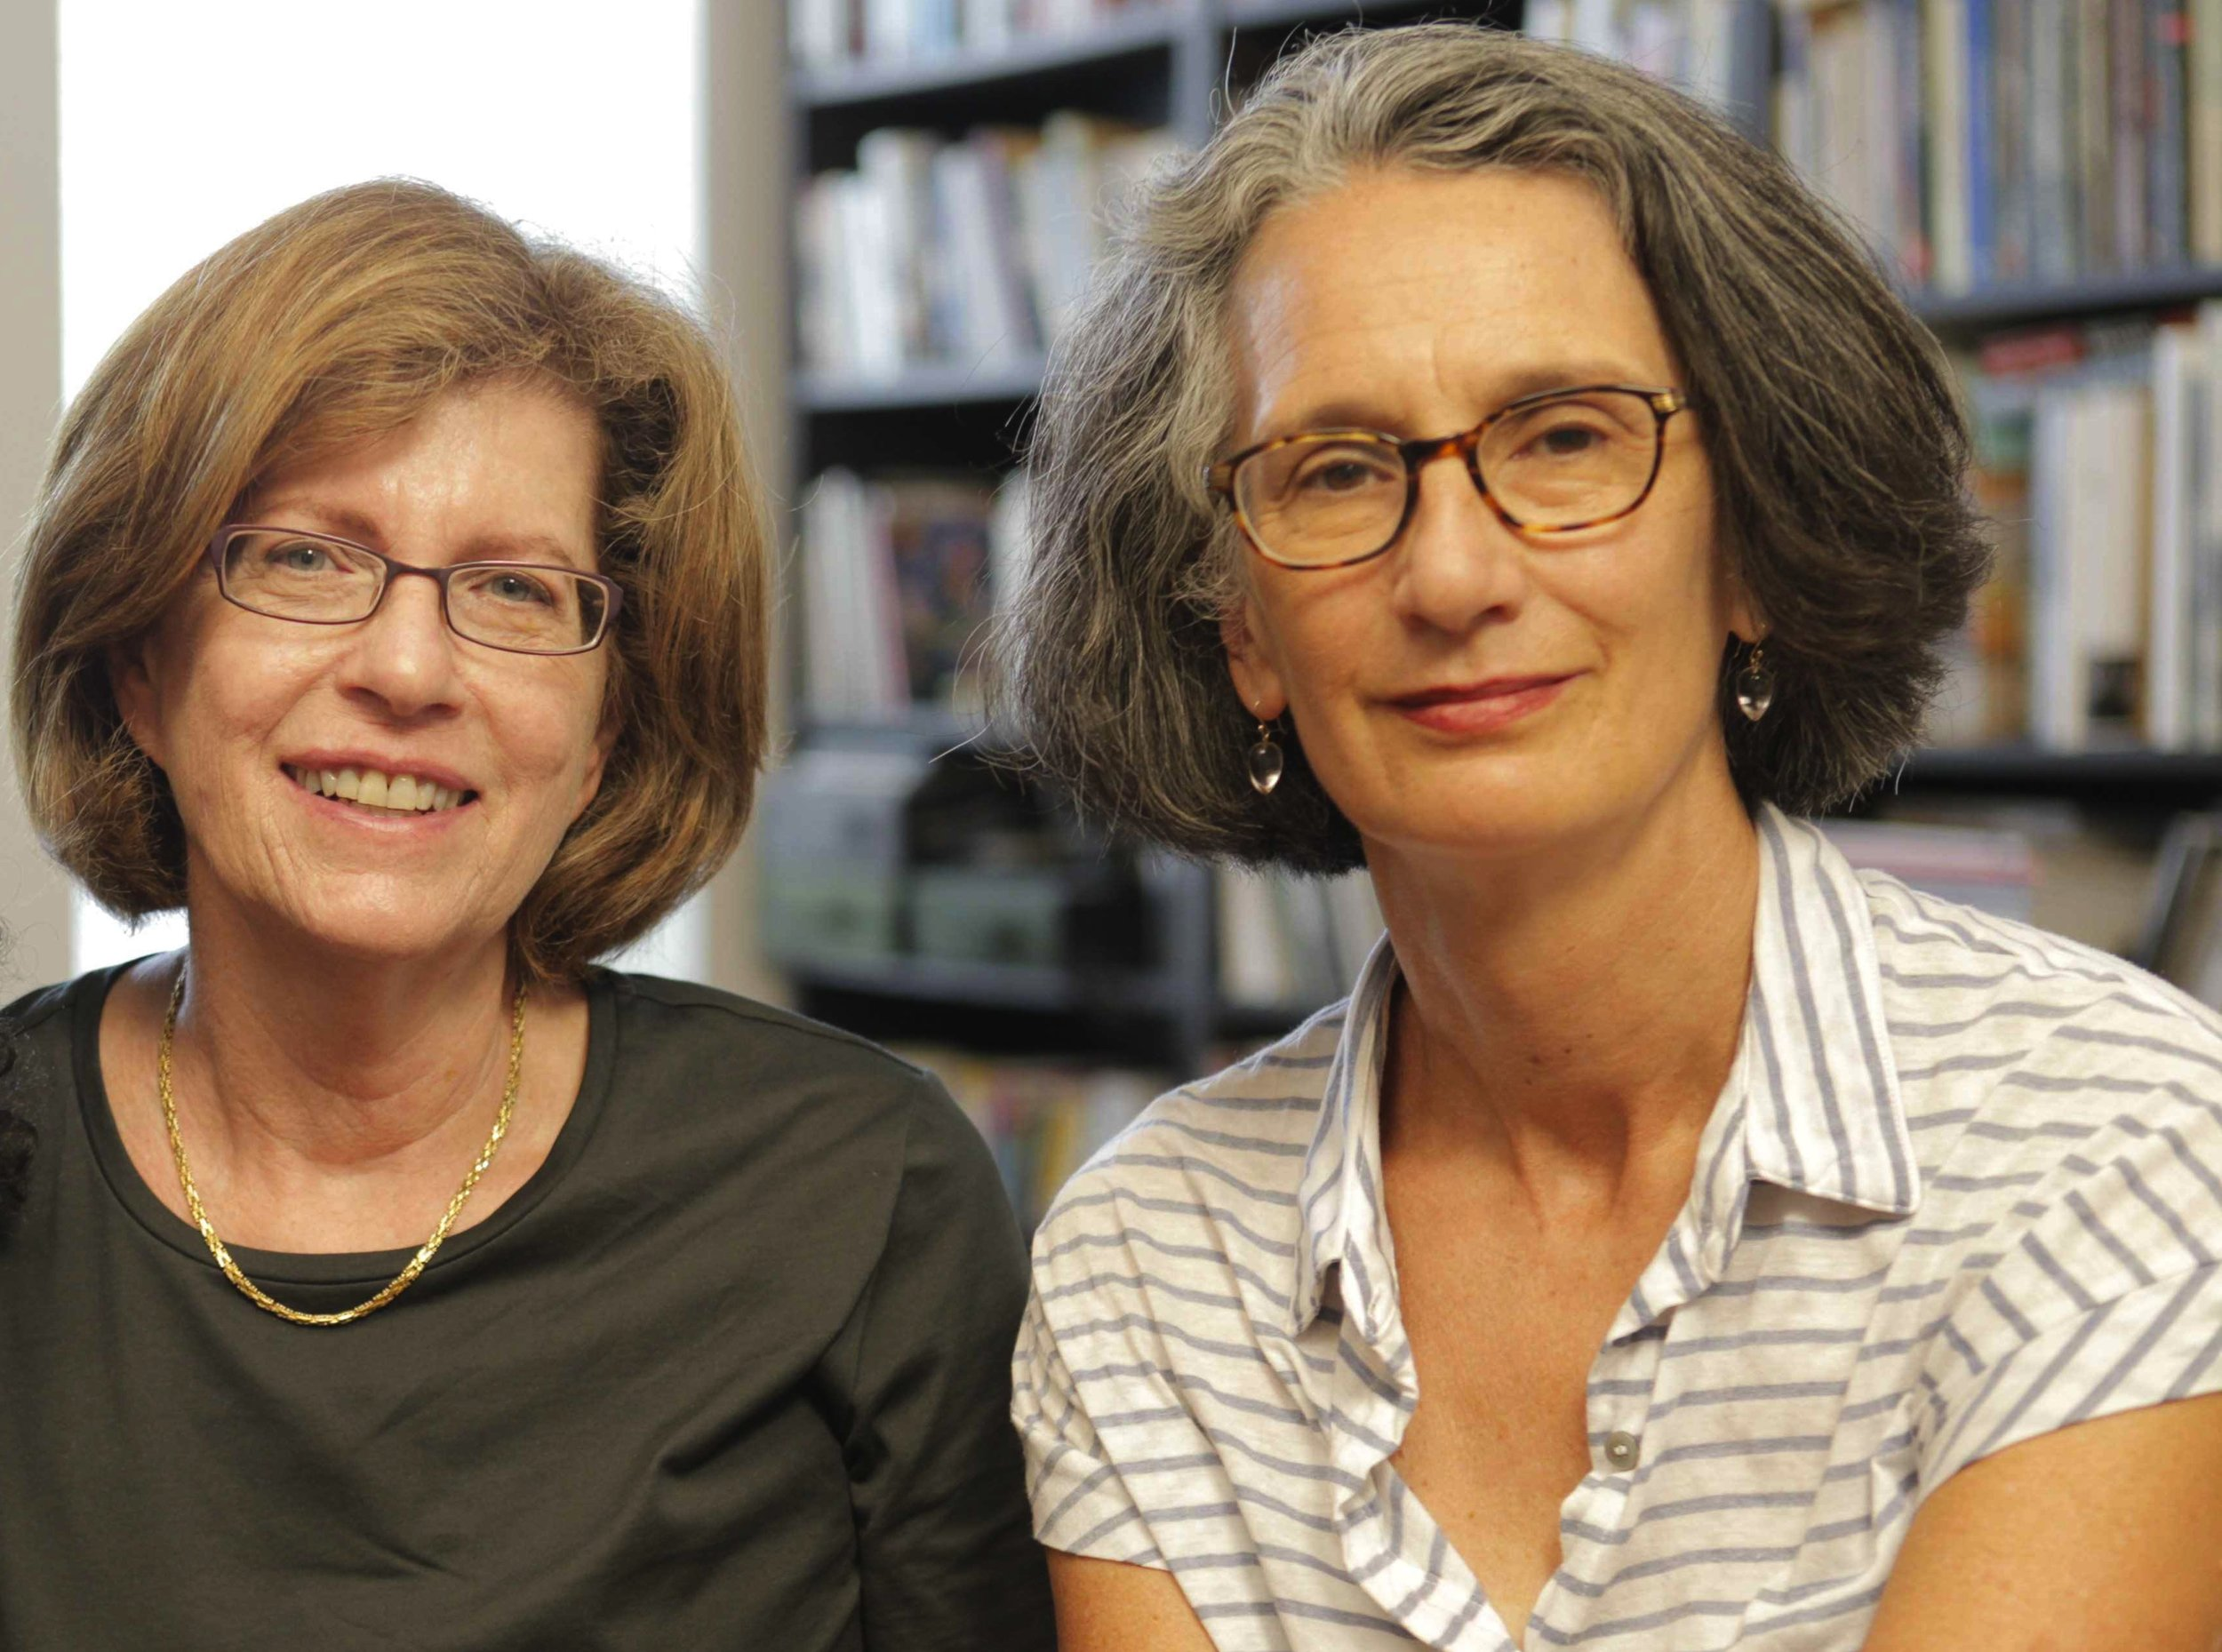 Barbara Attie (l) and Janet Goldwater